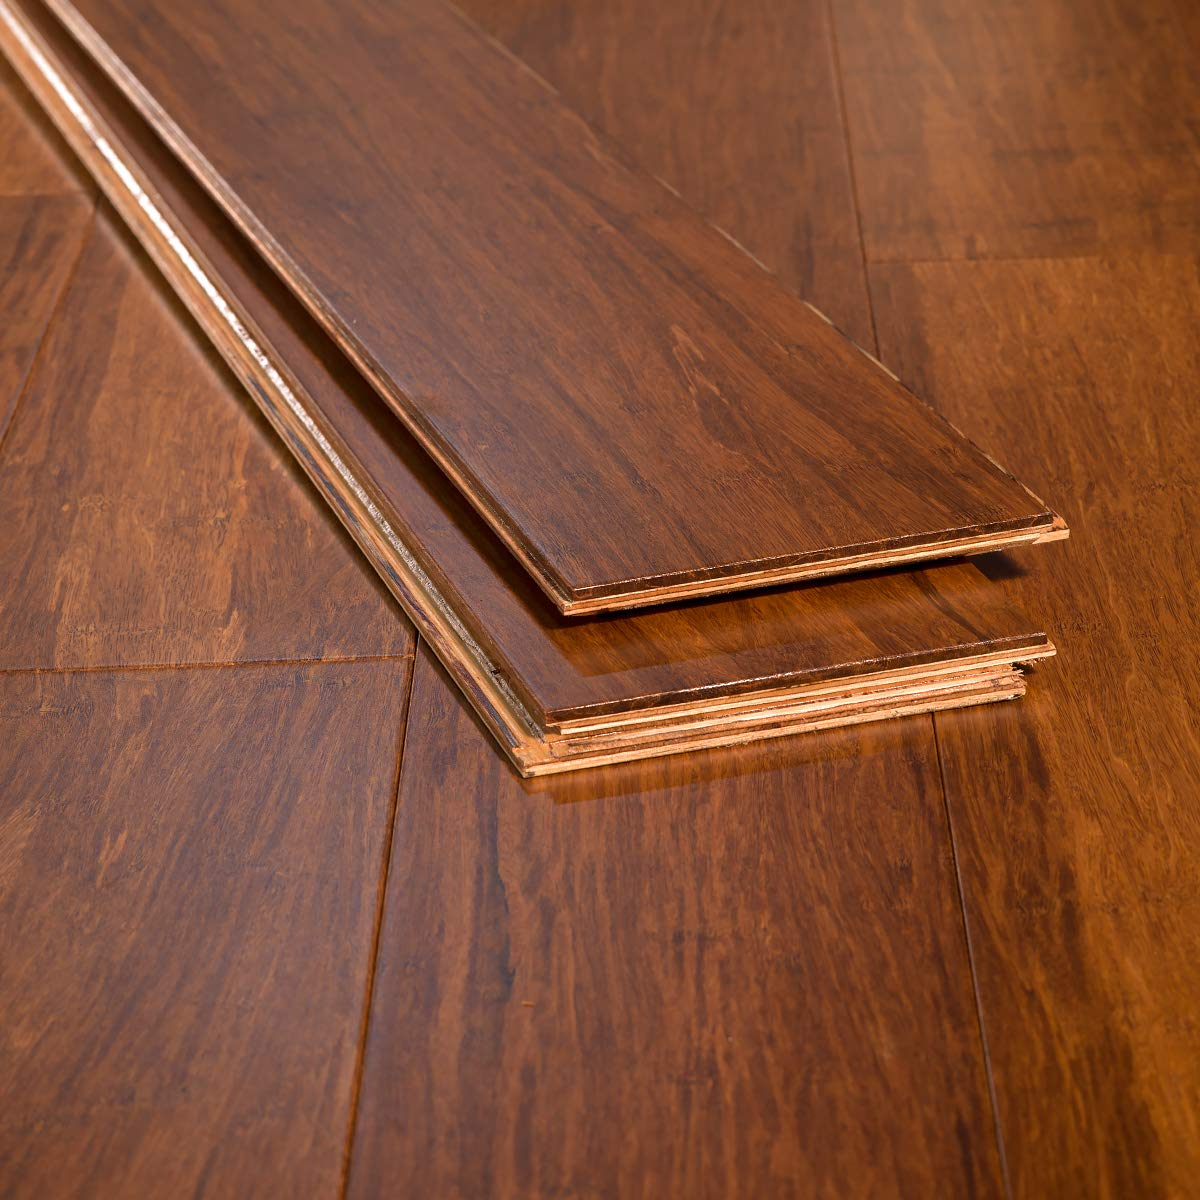 Vinyl Plank Flooring Vs Bamboo: Home Legend Solid Bamboo Flooring Toast